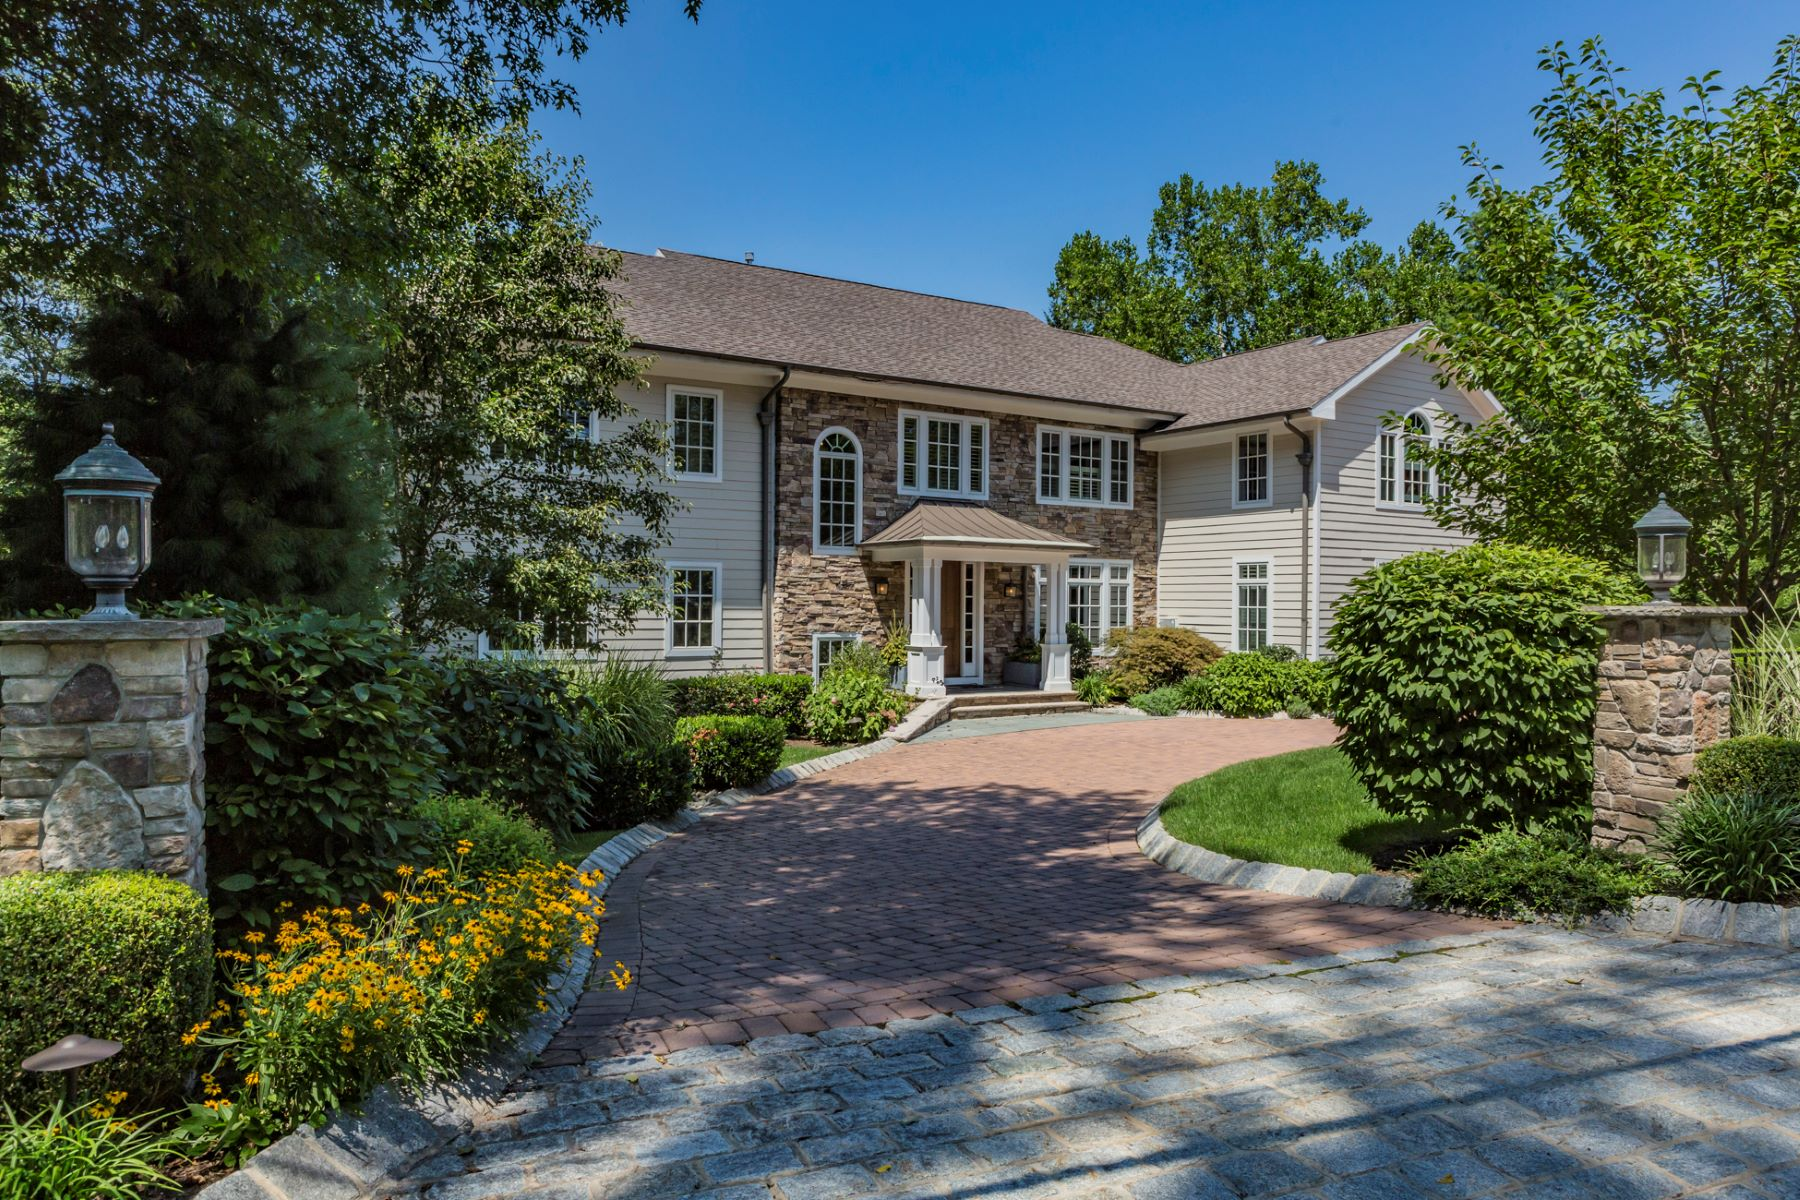 Single Family Home for Sale at Showhouse-Style Luxury in an Edgerstoune Enclave 53 Hun Road, Princeton, New Jersey 08540 United StatesMunicipality: Princeton